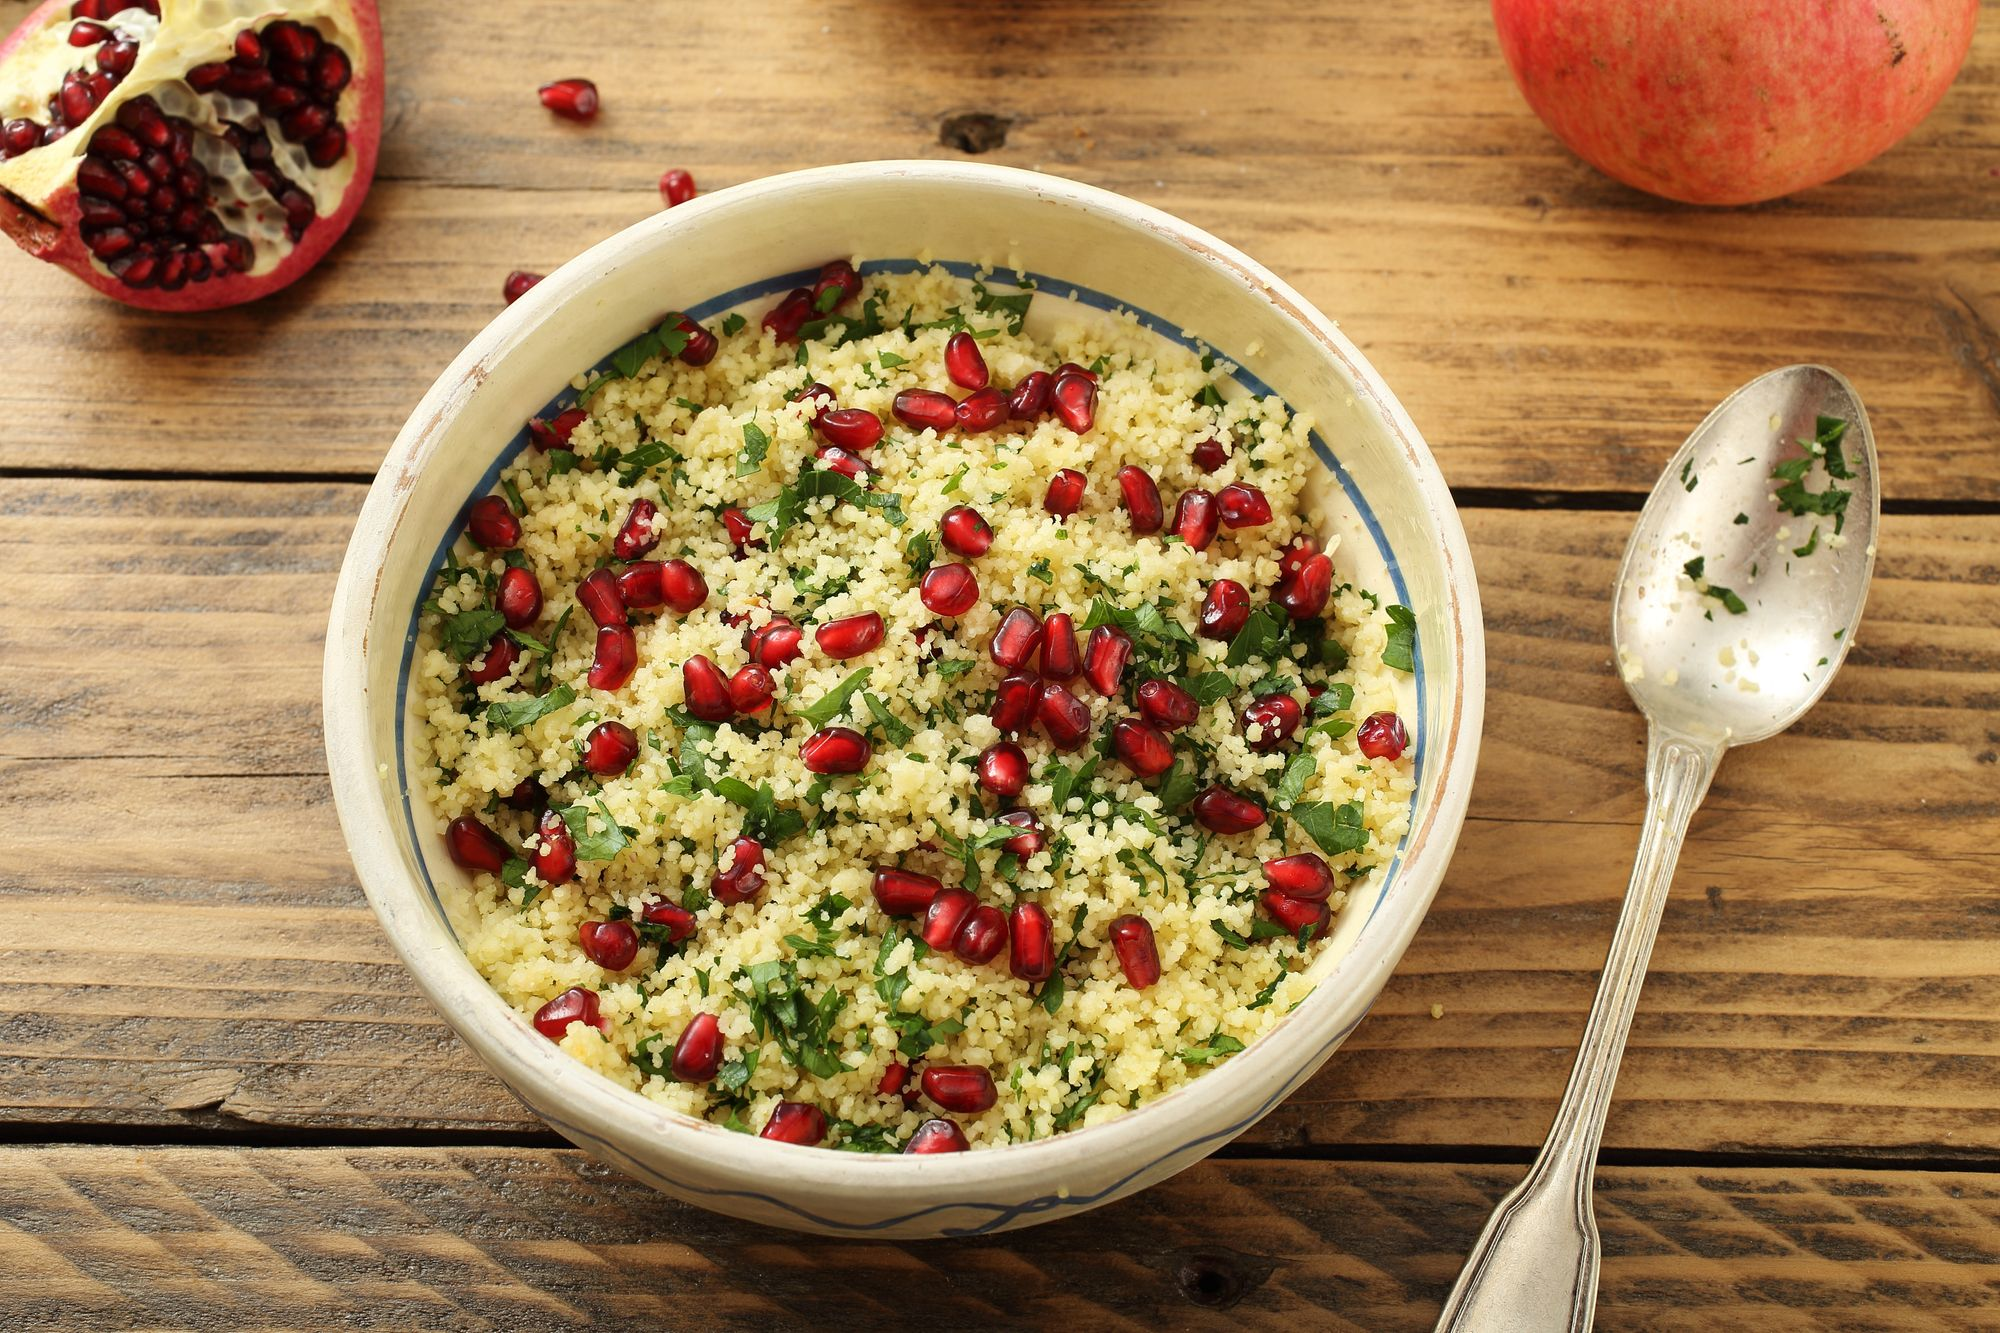 Parsley and Pomegranate Tabbouleh